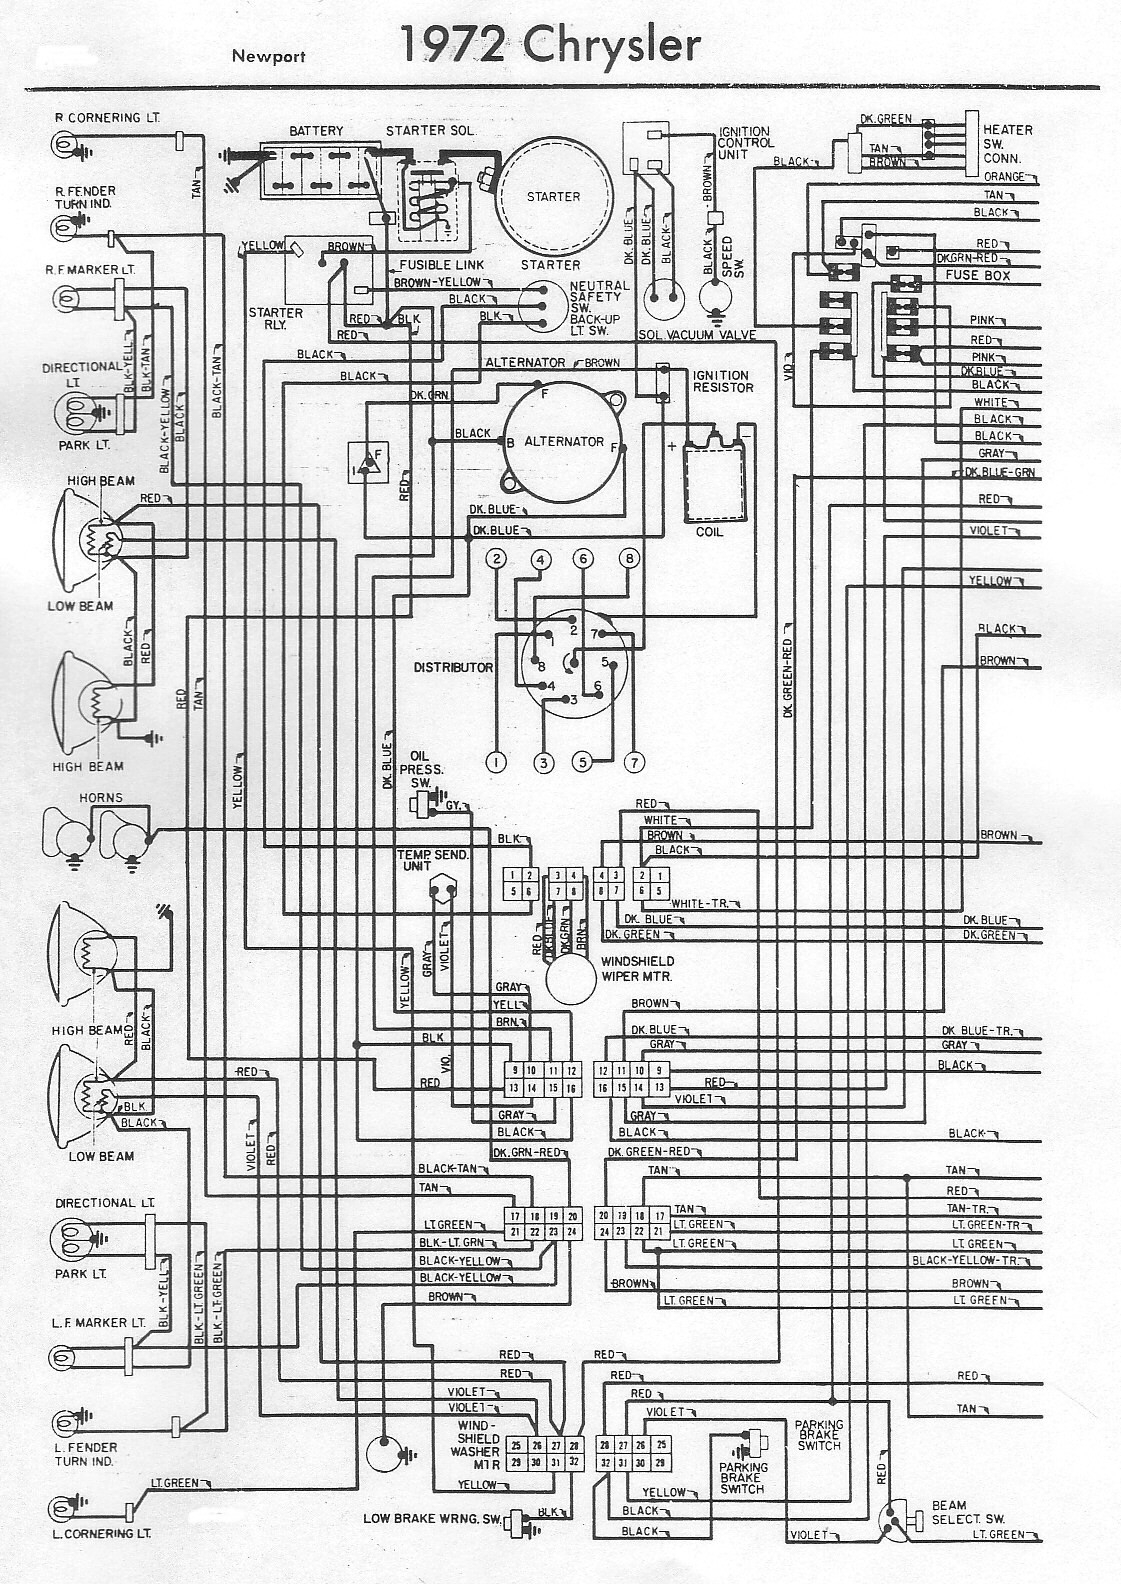 2006 Chrysler 300 Touring Engine Diagram Wiring Data 1966 Trusted Diagrams U2022 Rh Sivamuni Com Egr Replacement Motor